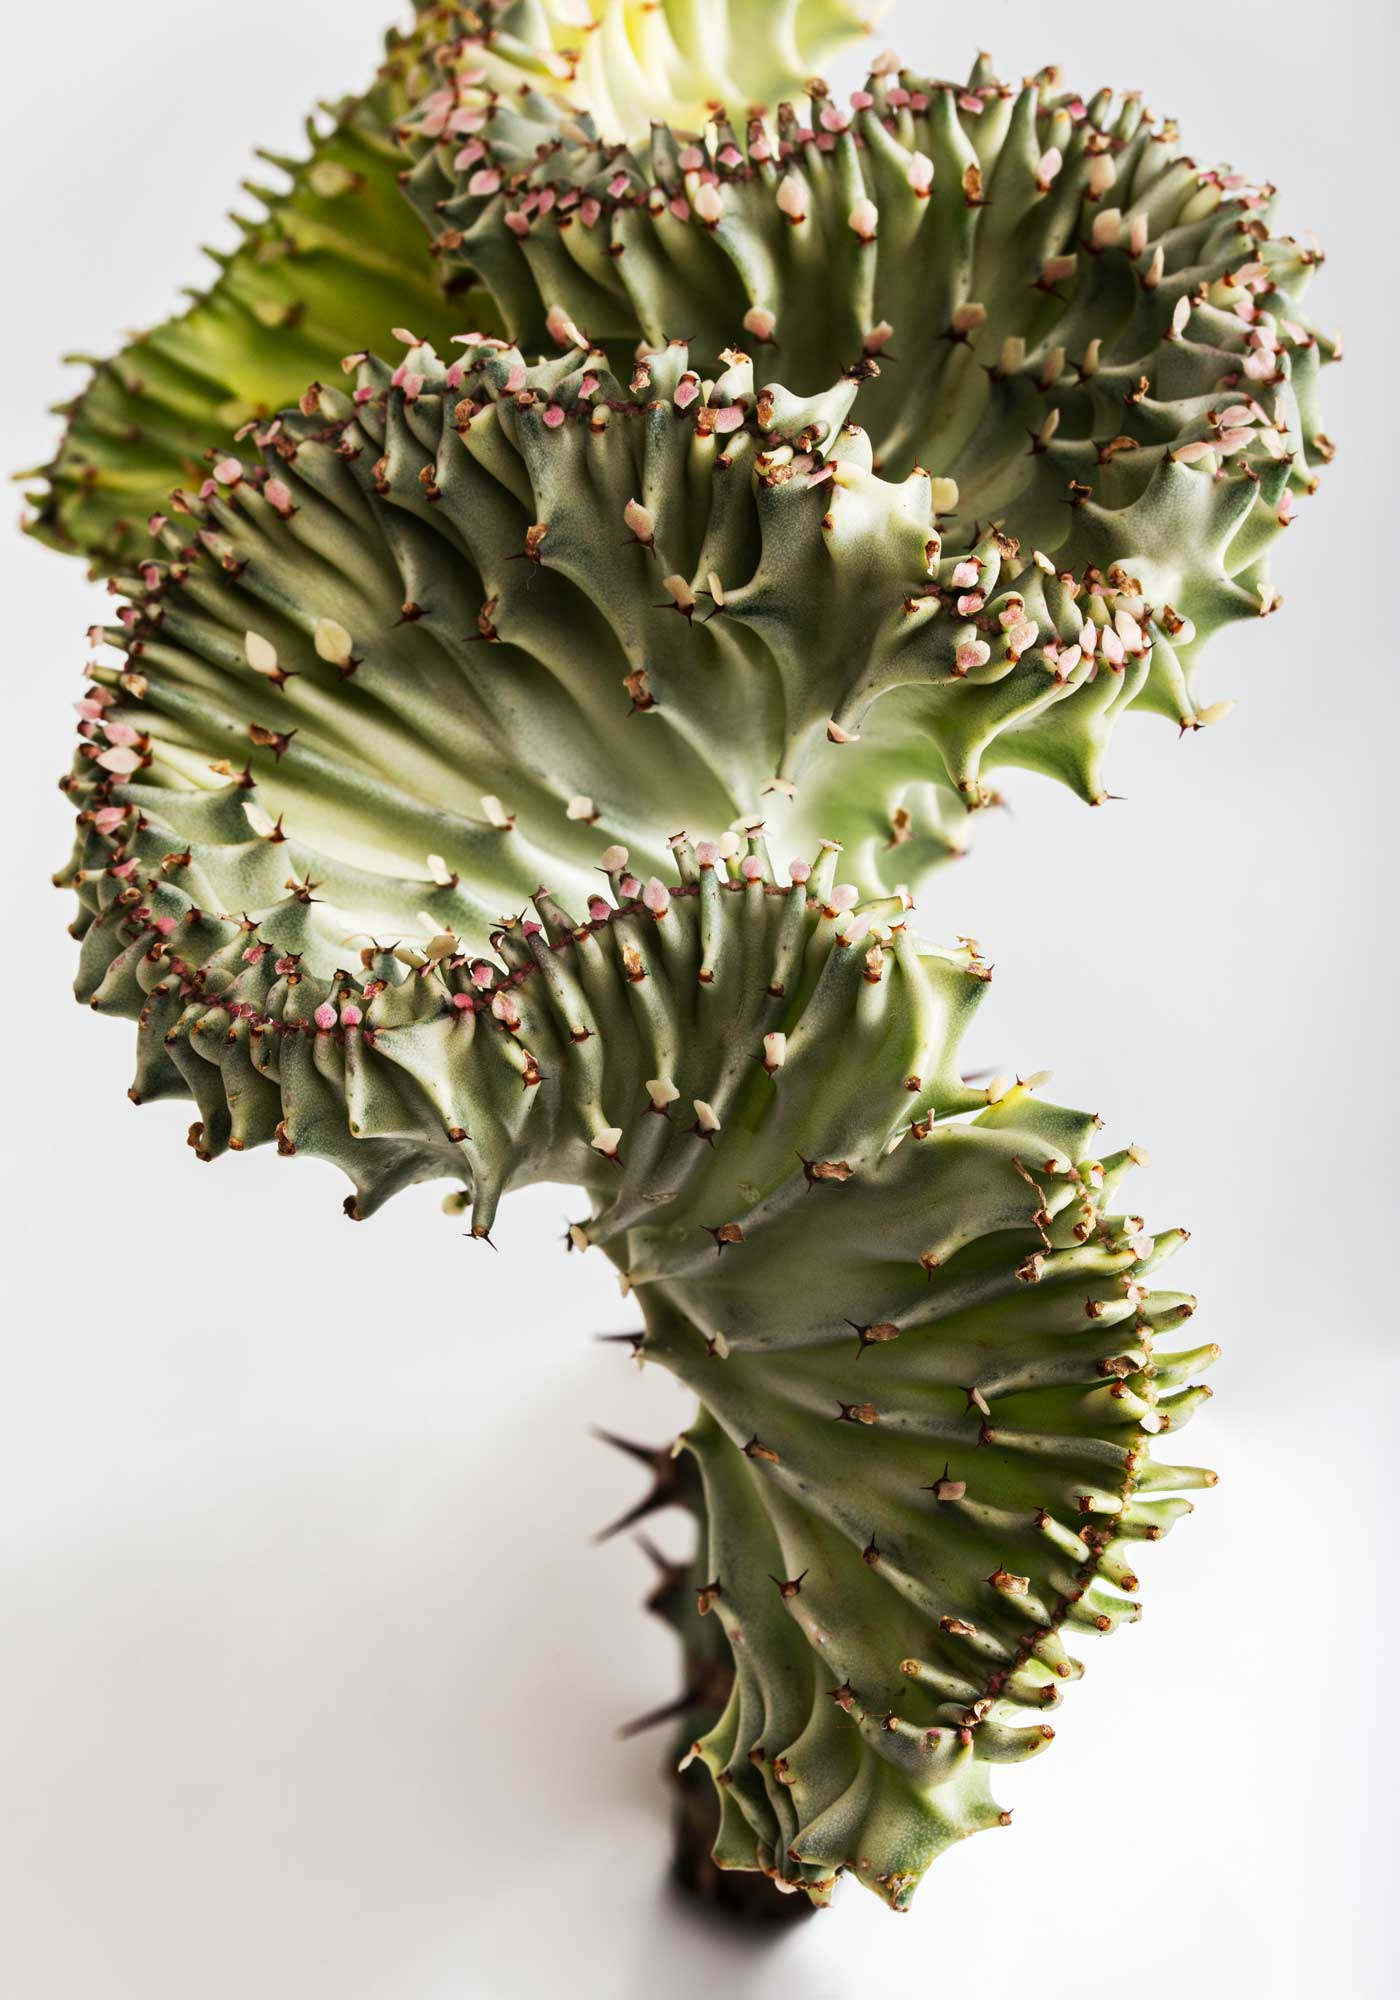 Perspektive of the twisted cactus